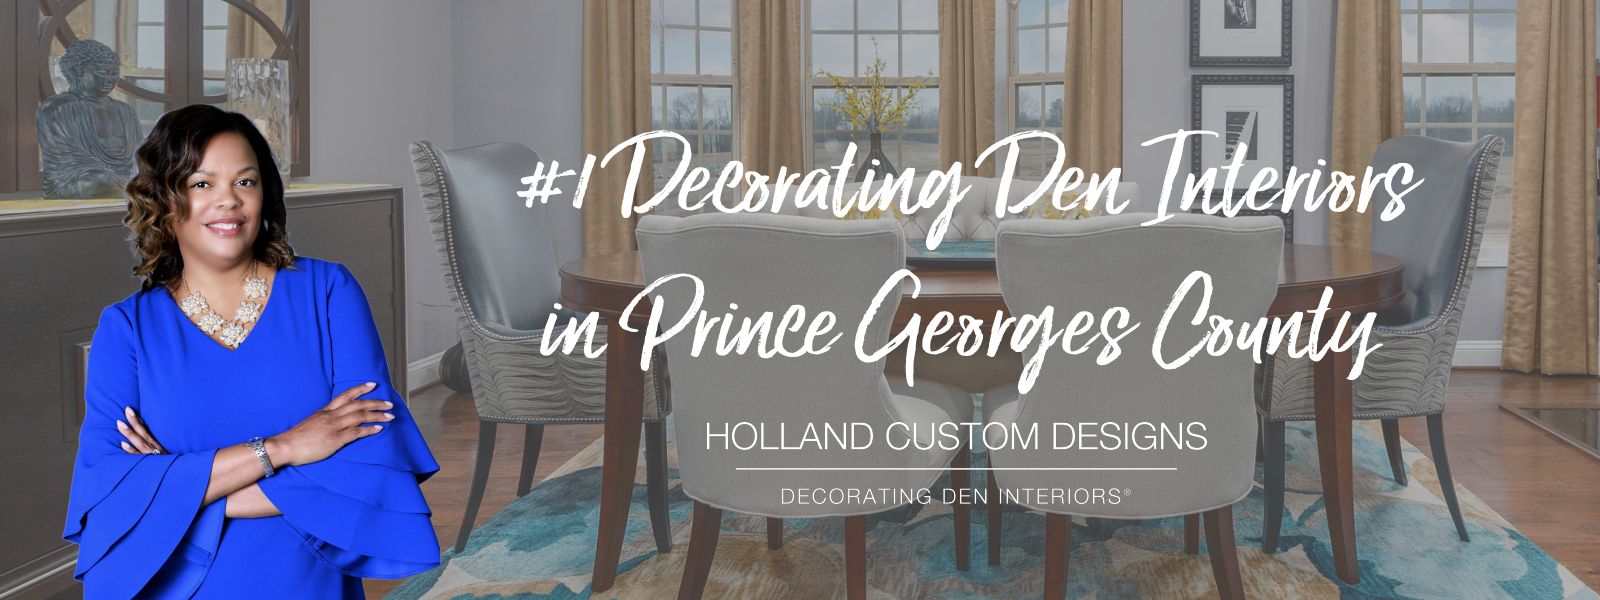 #1 Decorating Den Interiors in Princes Georges County 2019